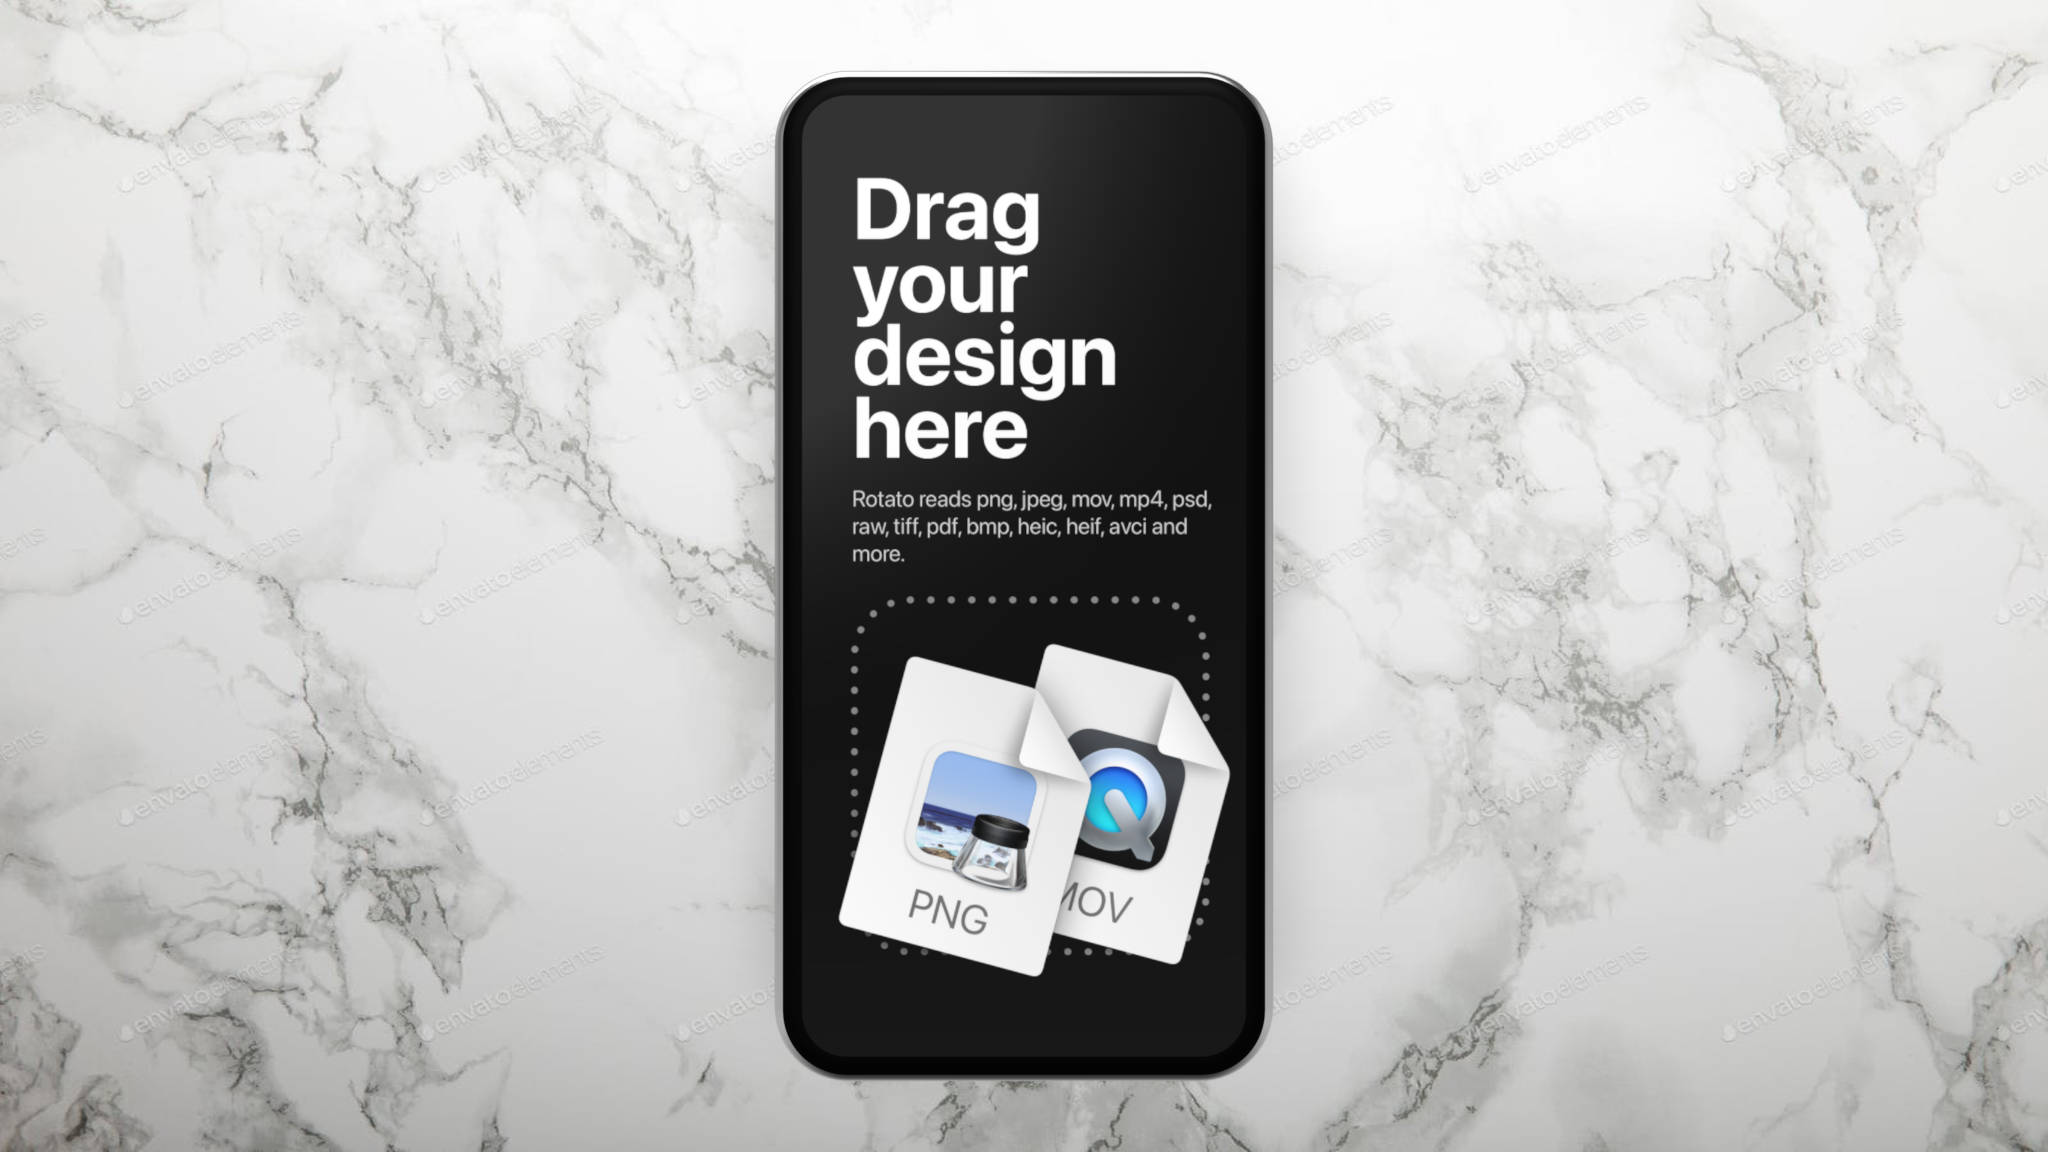 Generic phone mockup on marble background